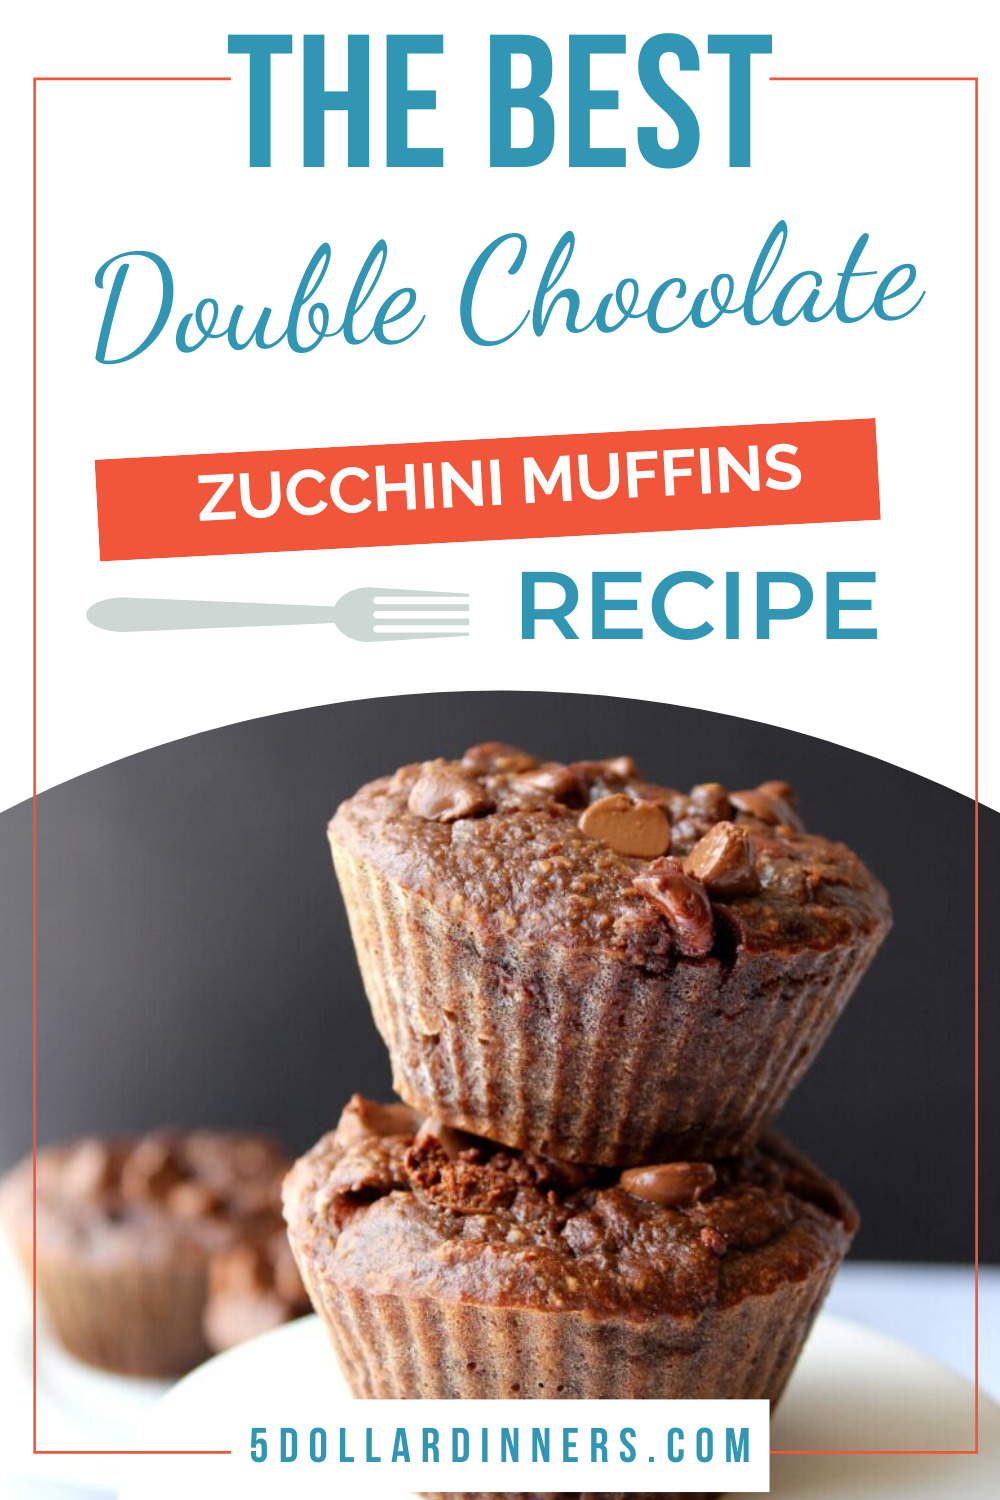 double chocolate zucchini muffins